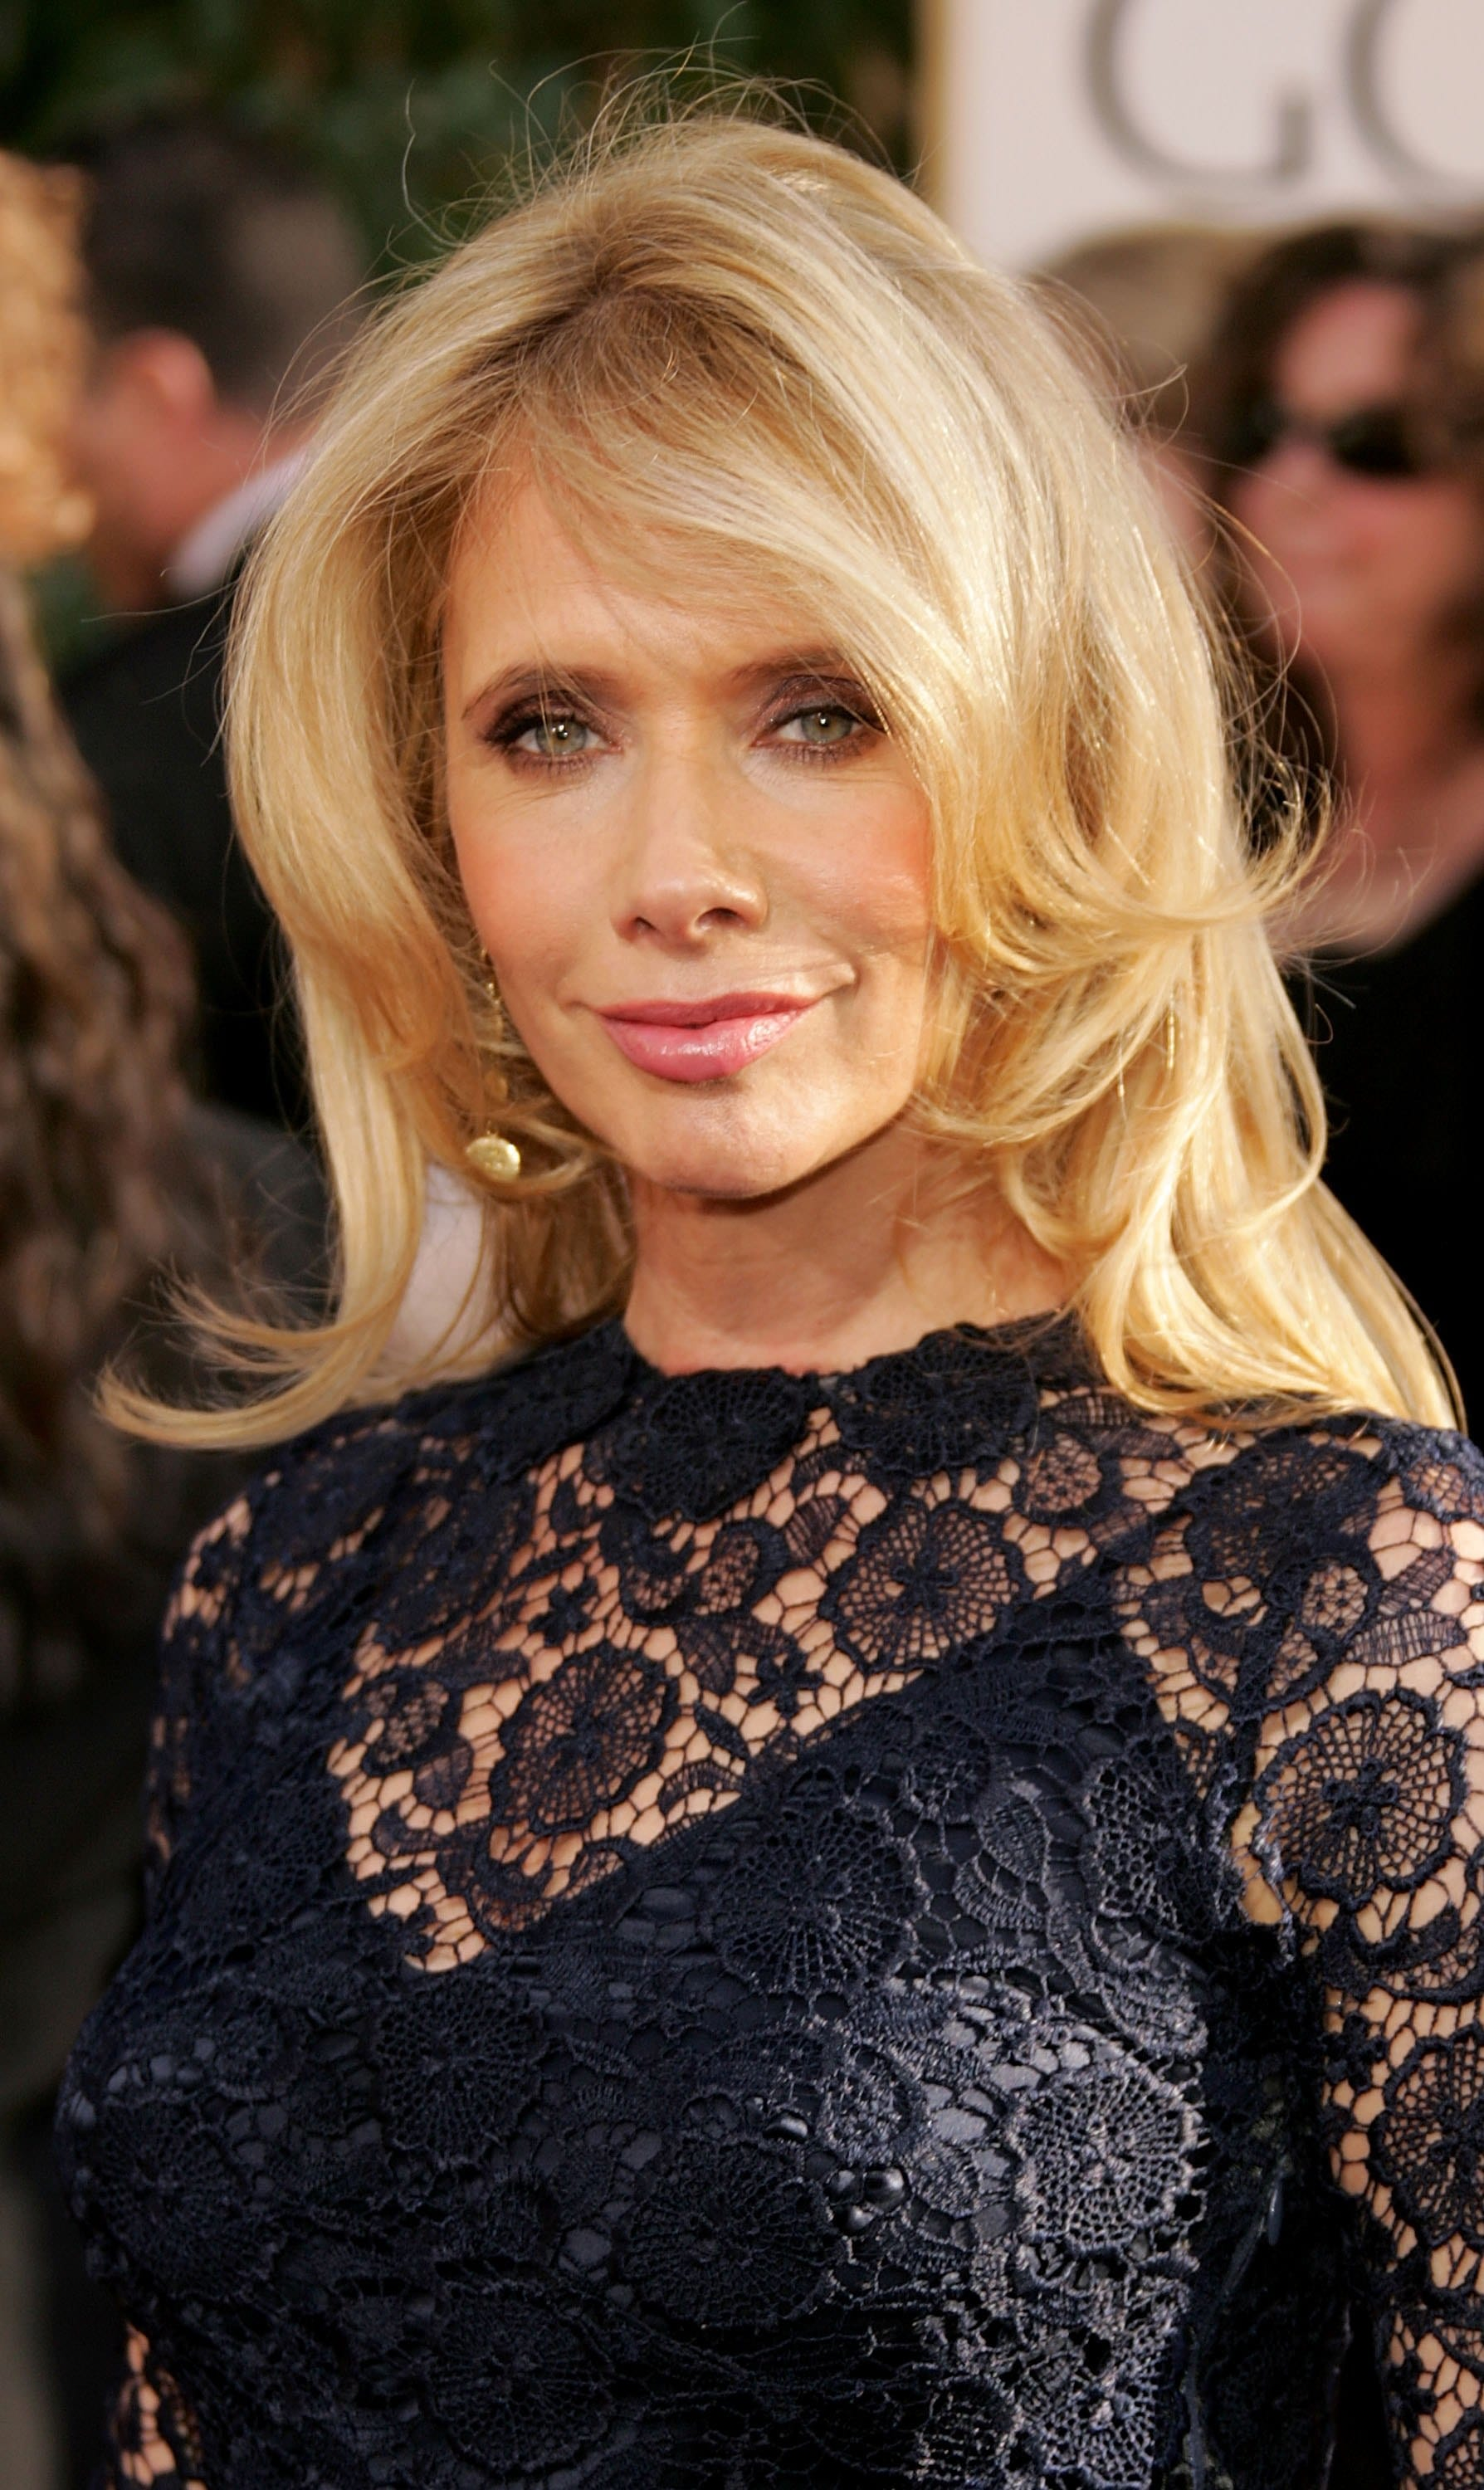 Rosanna Arquette Wallpapers